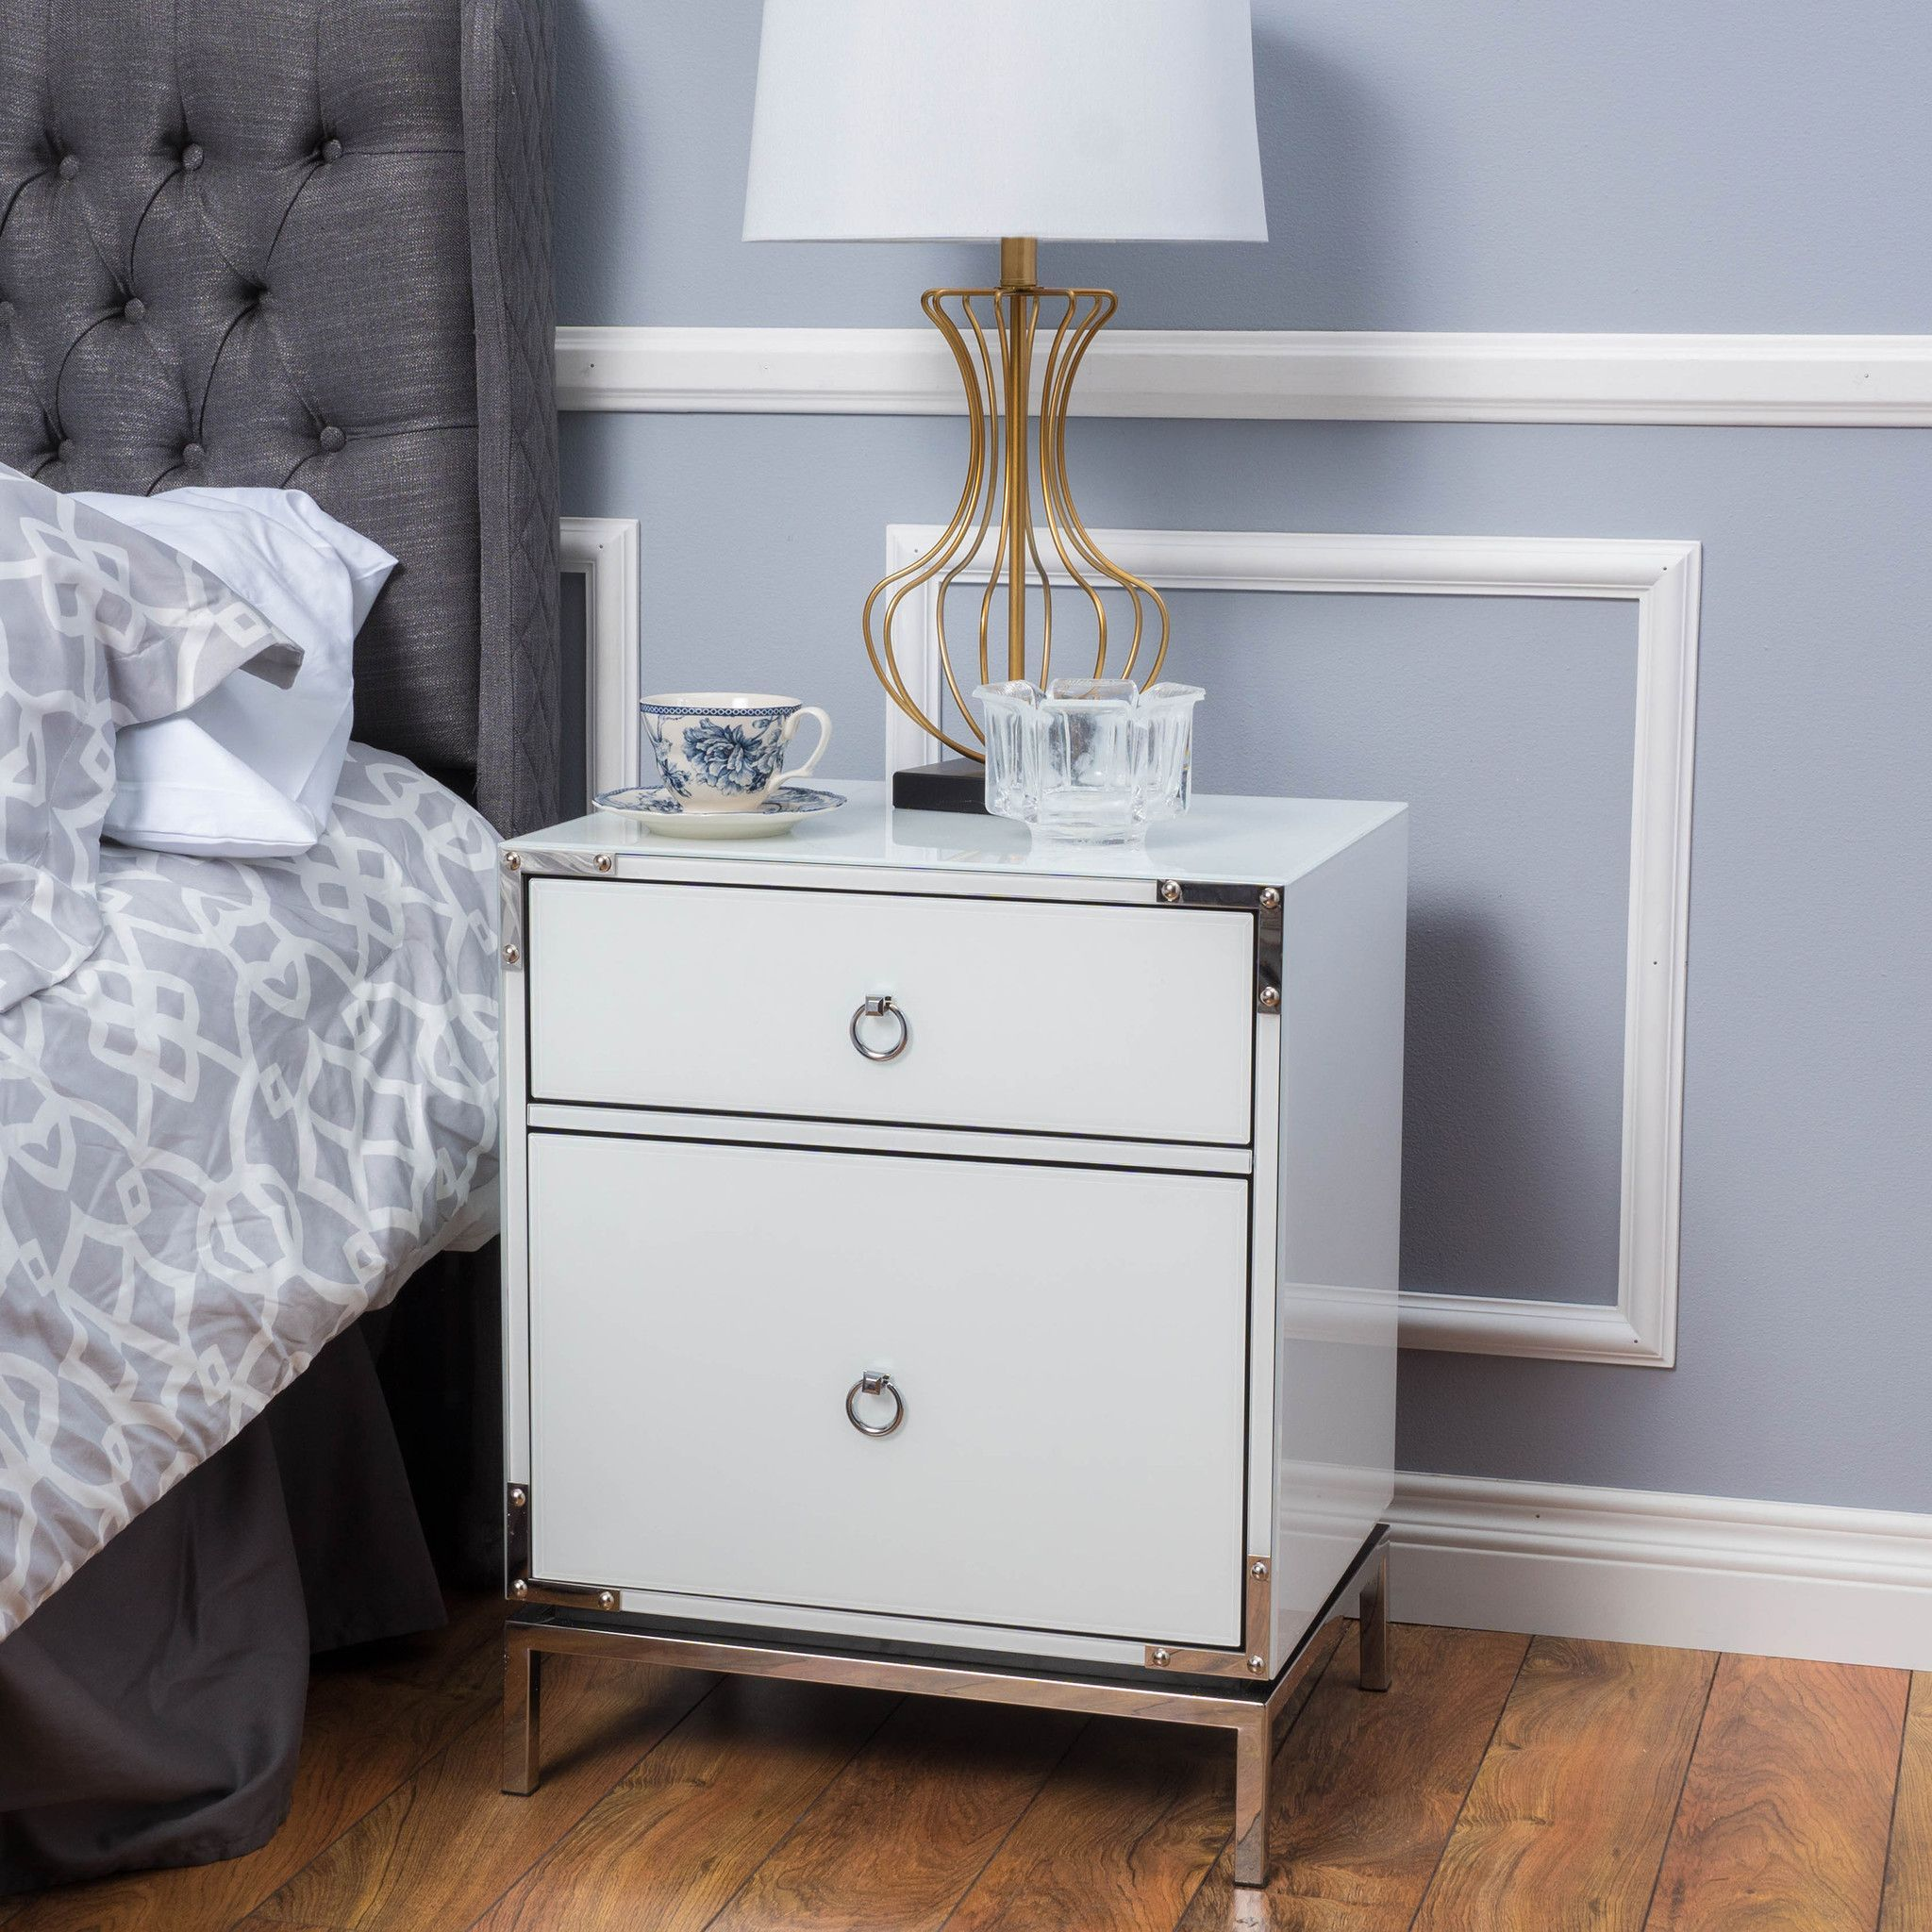 danea white glass drawer bedside table future home mirrored bedroom end tables inexpensive rustic coffee round granite kmart kids storage ethan allen ladder back dining chairs